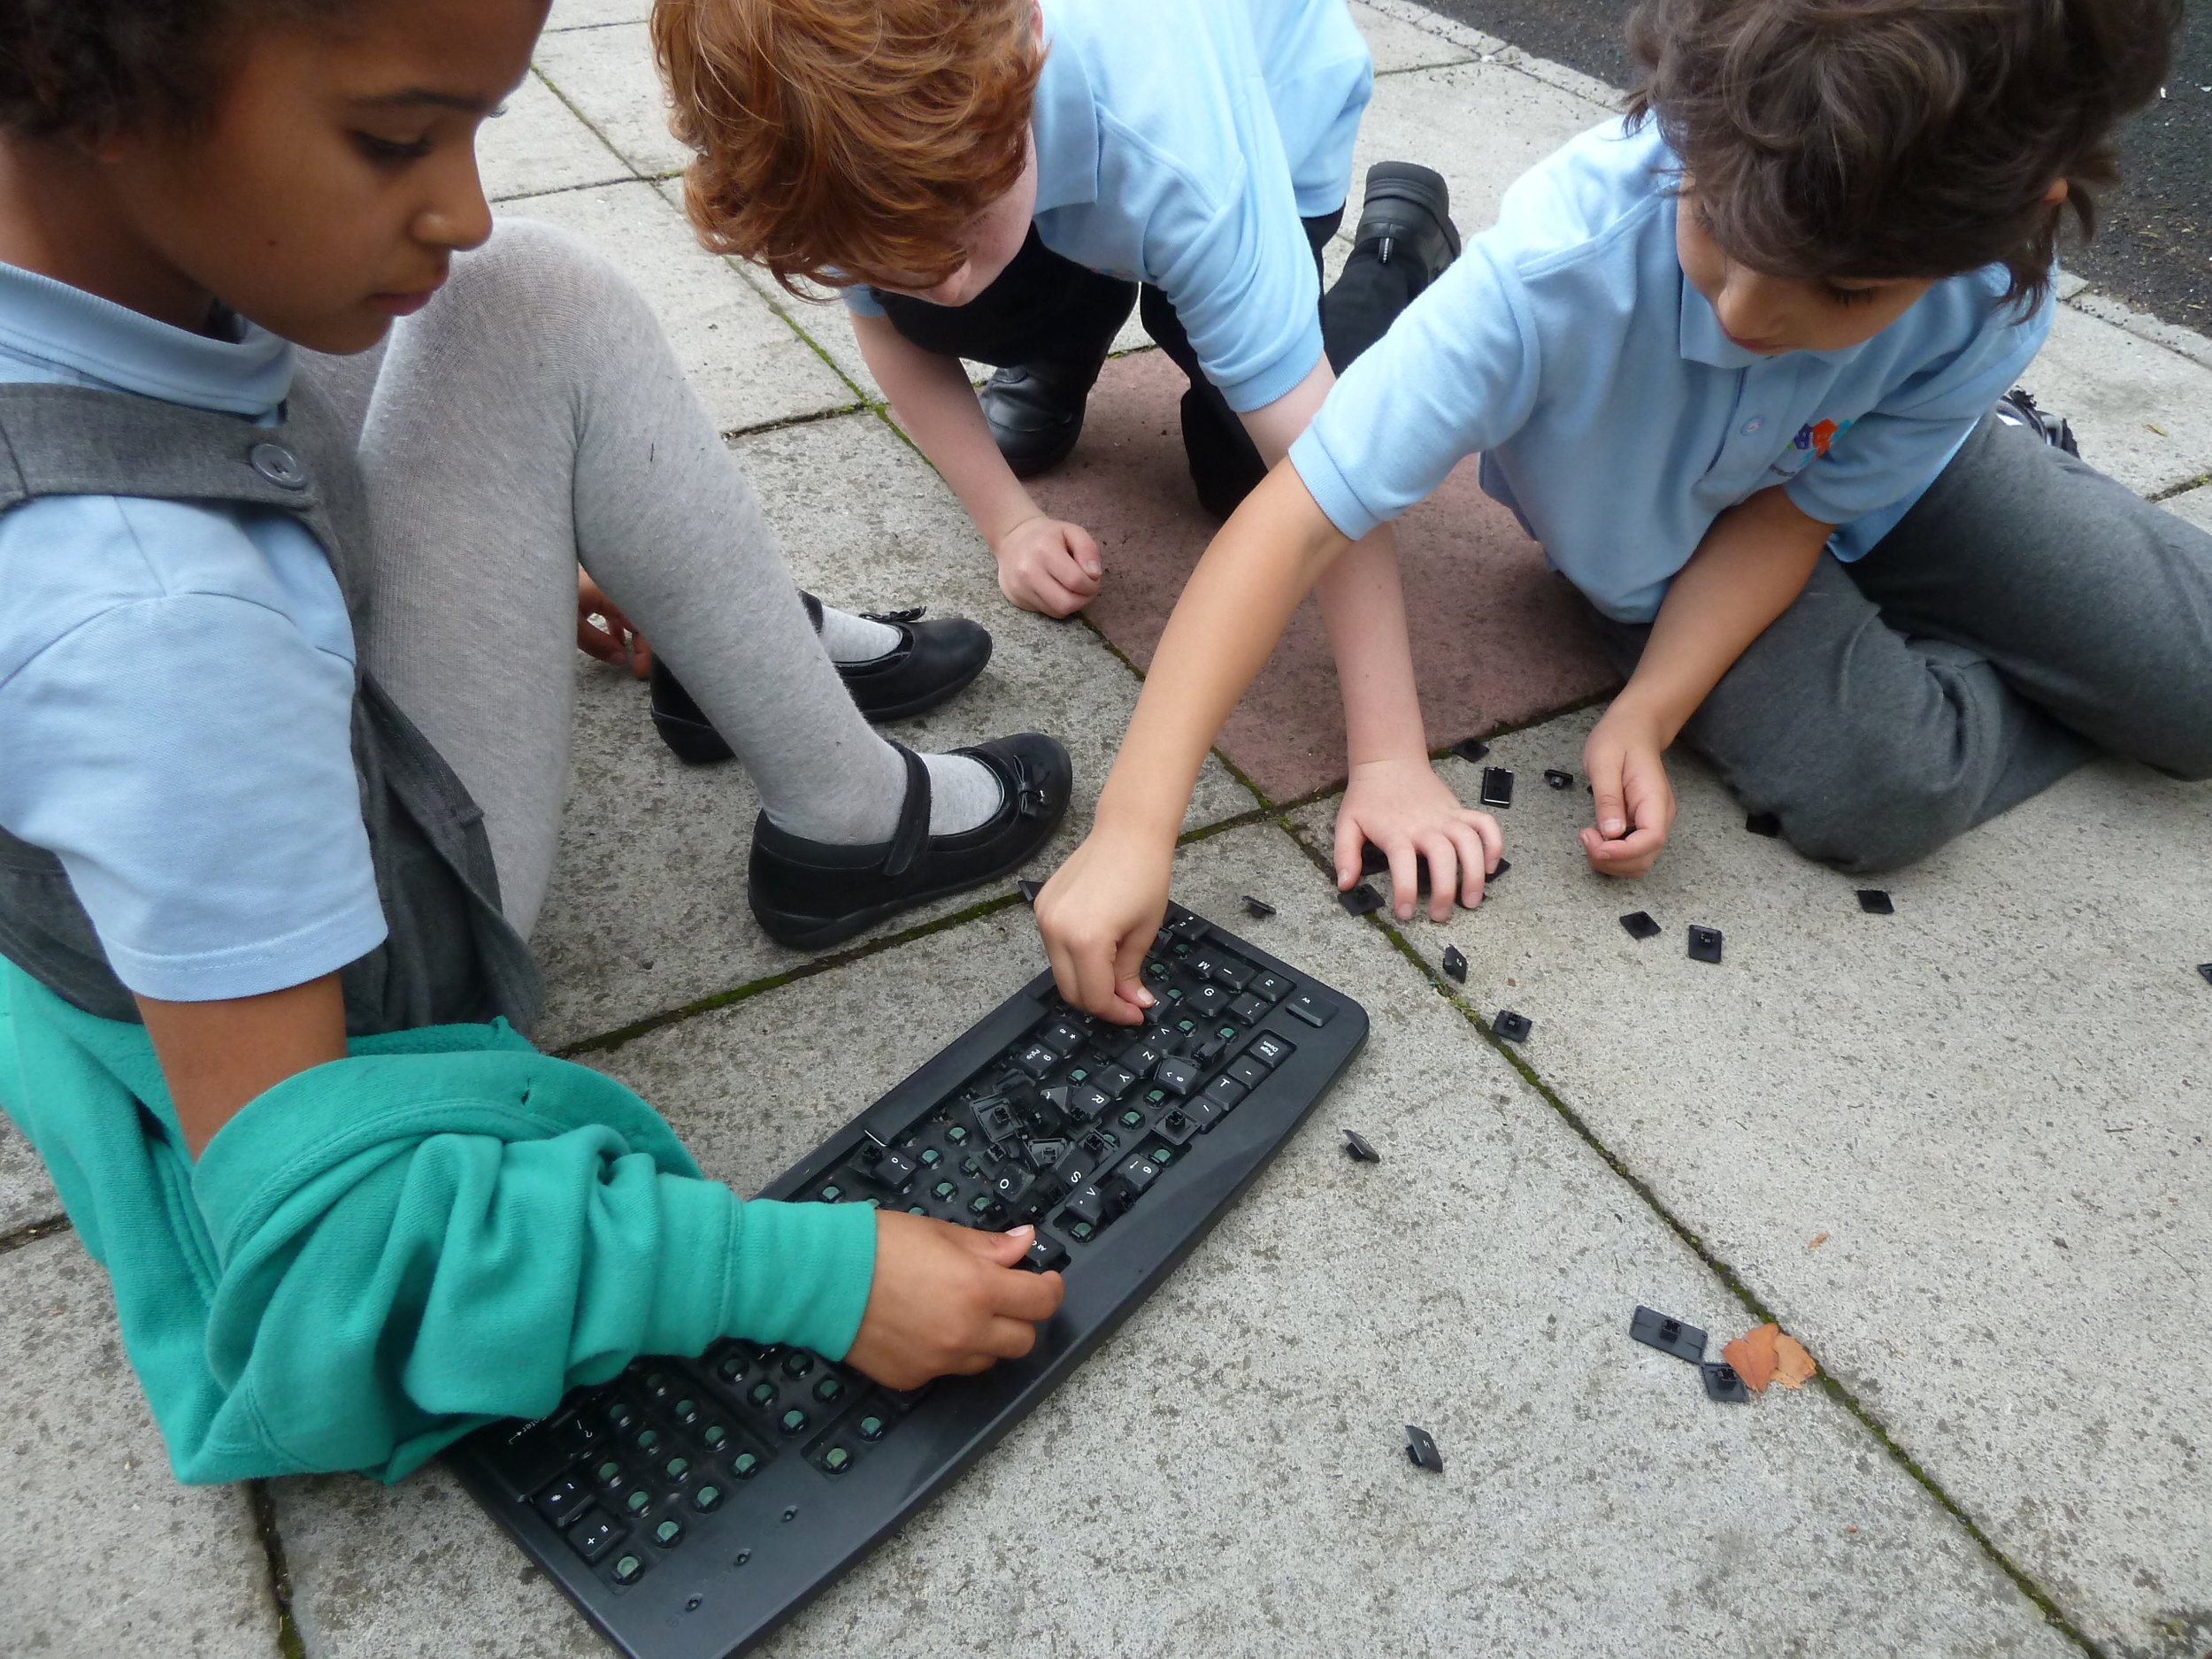 Allows children opportunities for 'deconstruction' developing skills in manipulation and fine motor skills as well as developing a better sense of understanding.